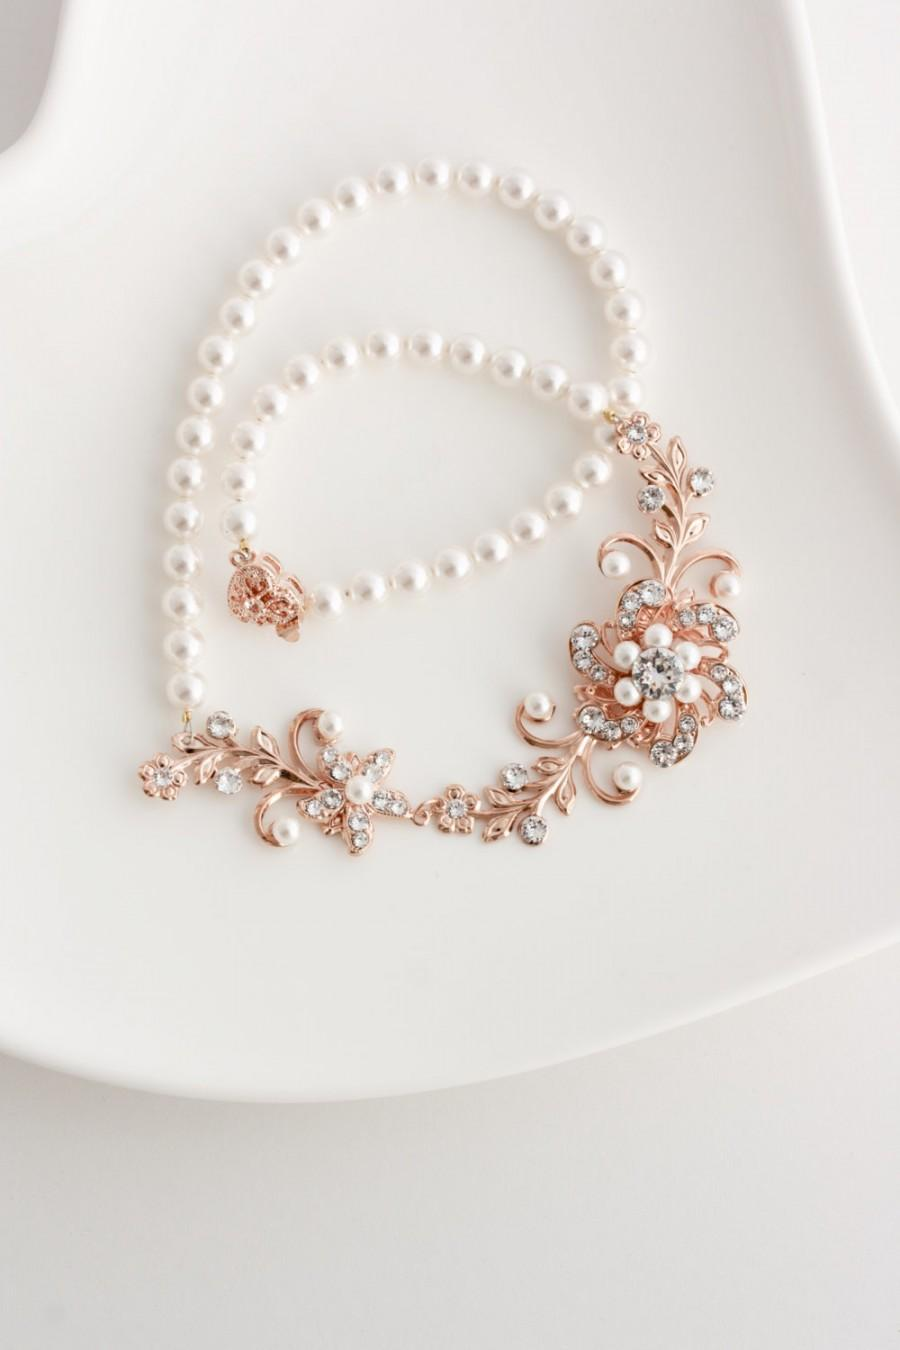 Mariage - Bridal Jewelry Rose Gold Wedding Necklace Pearl Bridal Necklace Flower Leaf Necklace Swarovski Crystal Rose Gold Jewelry SABINE GARDEN